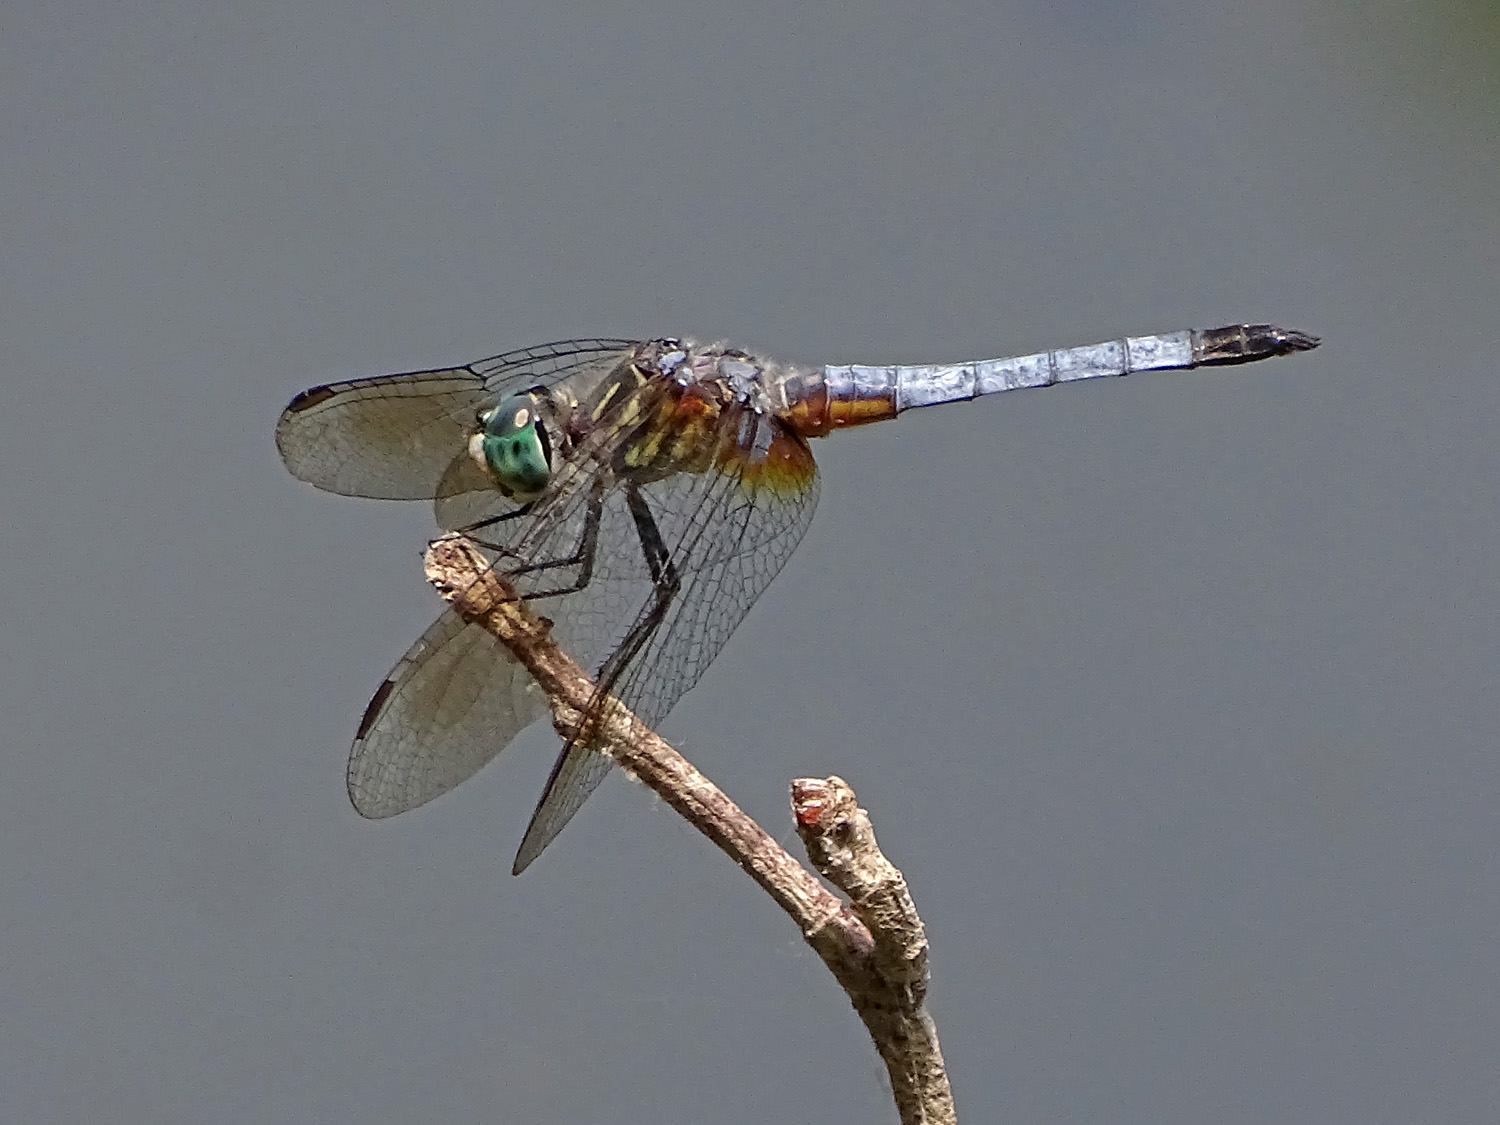 A blue dragonfly at the Pond, Central Park